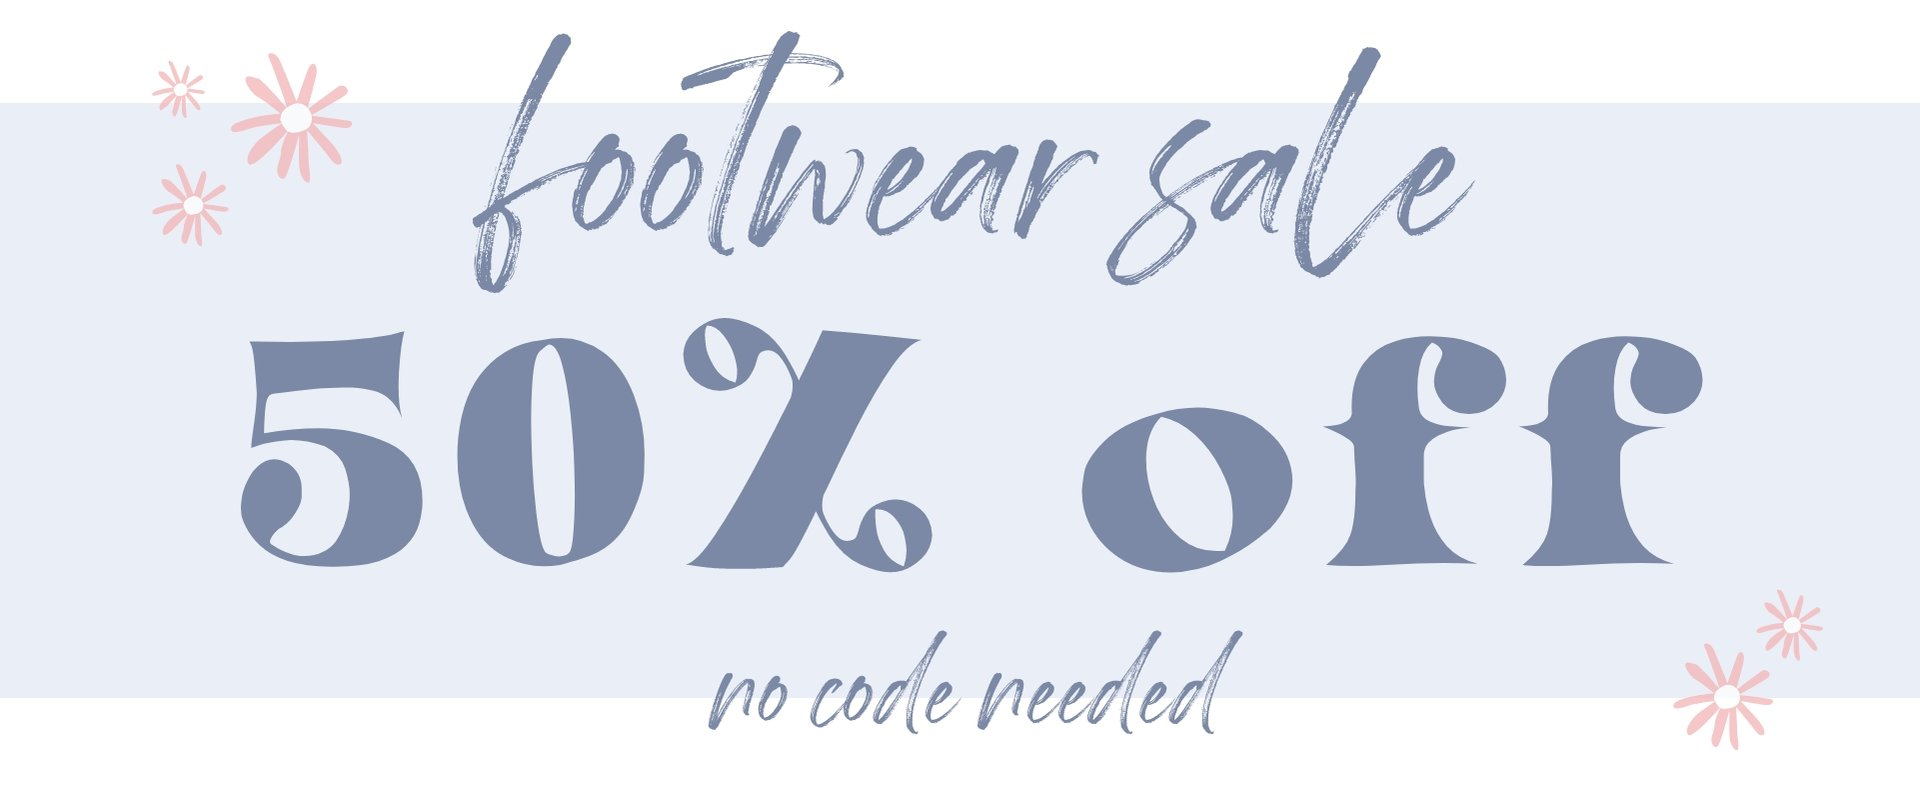 TFL Boutique - Boutique Shoe Sale